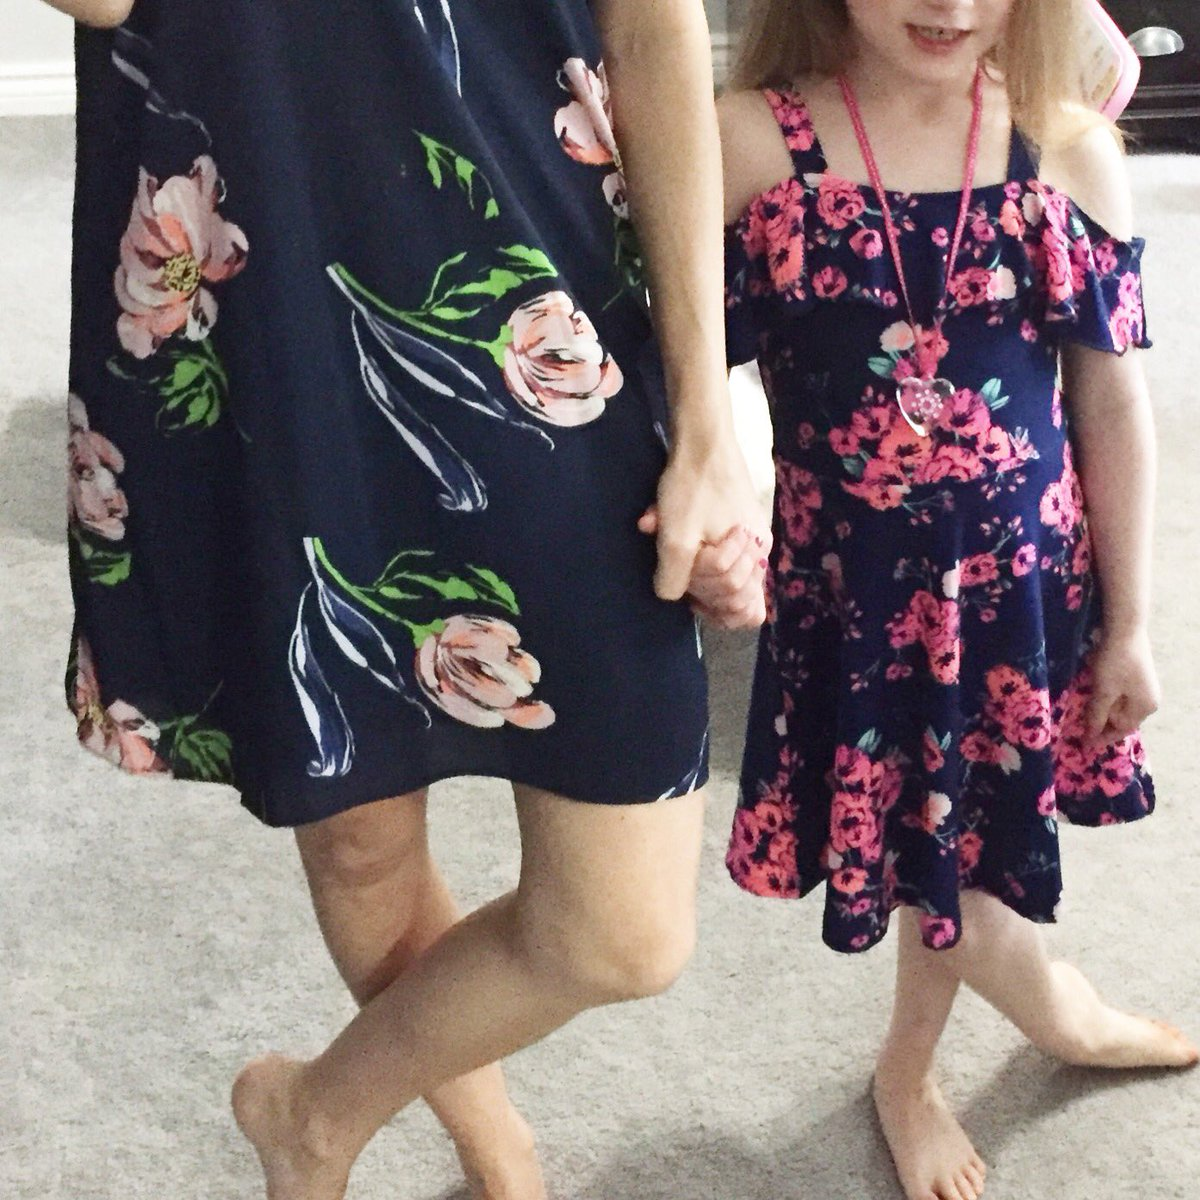 #blogged All the warm weather must haves for Mommy &amp; daughter #ontheblog shop them all here  http:// bit.ly/2oXvv1B  &nbsp;   #styleblogger<br>http://pic.twitter.com/3xXVBsZoFv